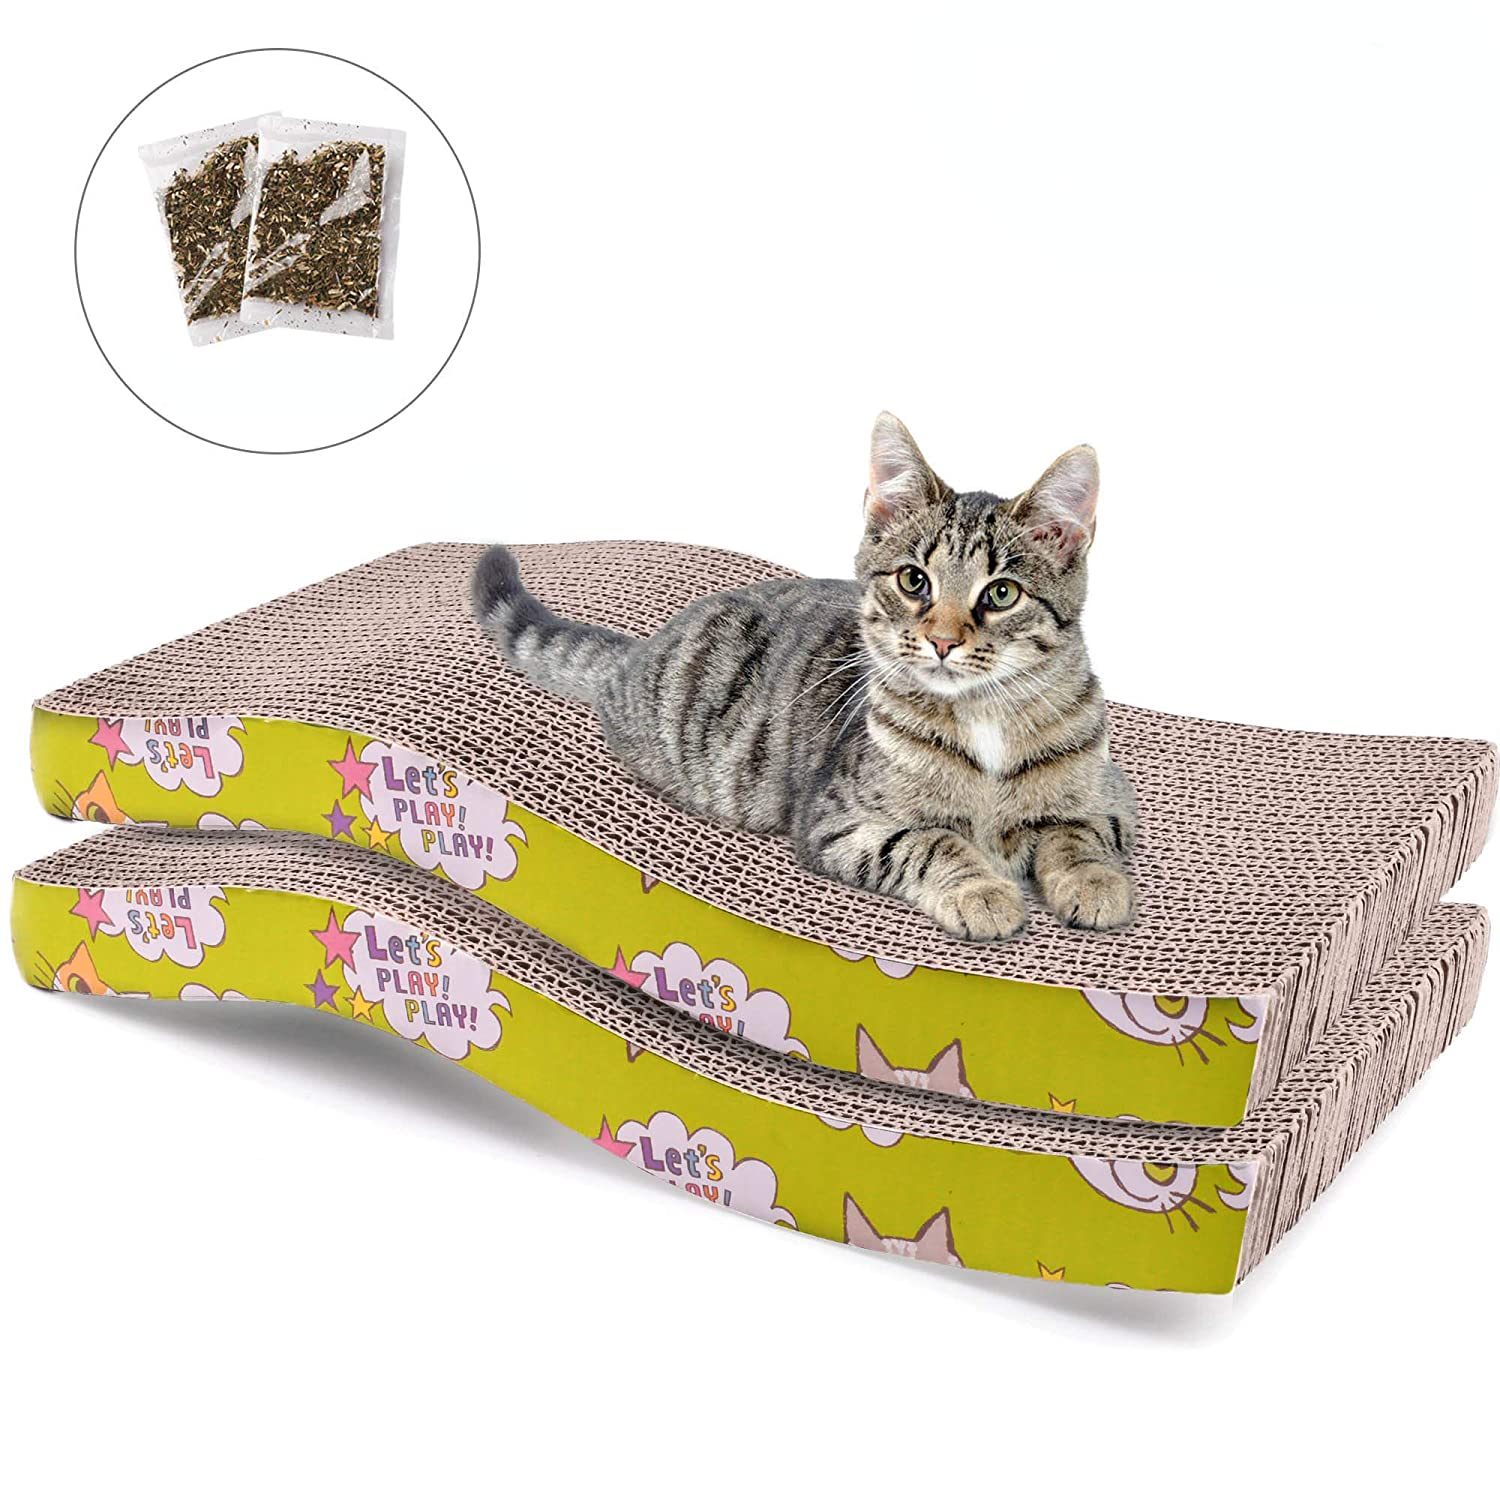 2 Pack Cat Scratcher Cardboard, Recycle Corrugated Cat Scratching Pad Wave Shaped Reversible Kitty Cat Scratcher Lounge Sofa for Furniture Protector, Catnip Included 81ixdyMx4AL